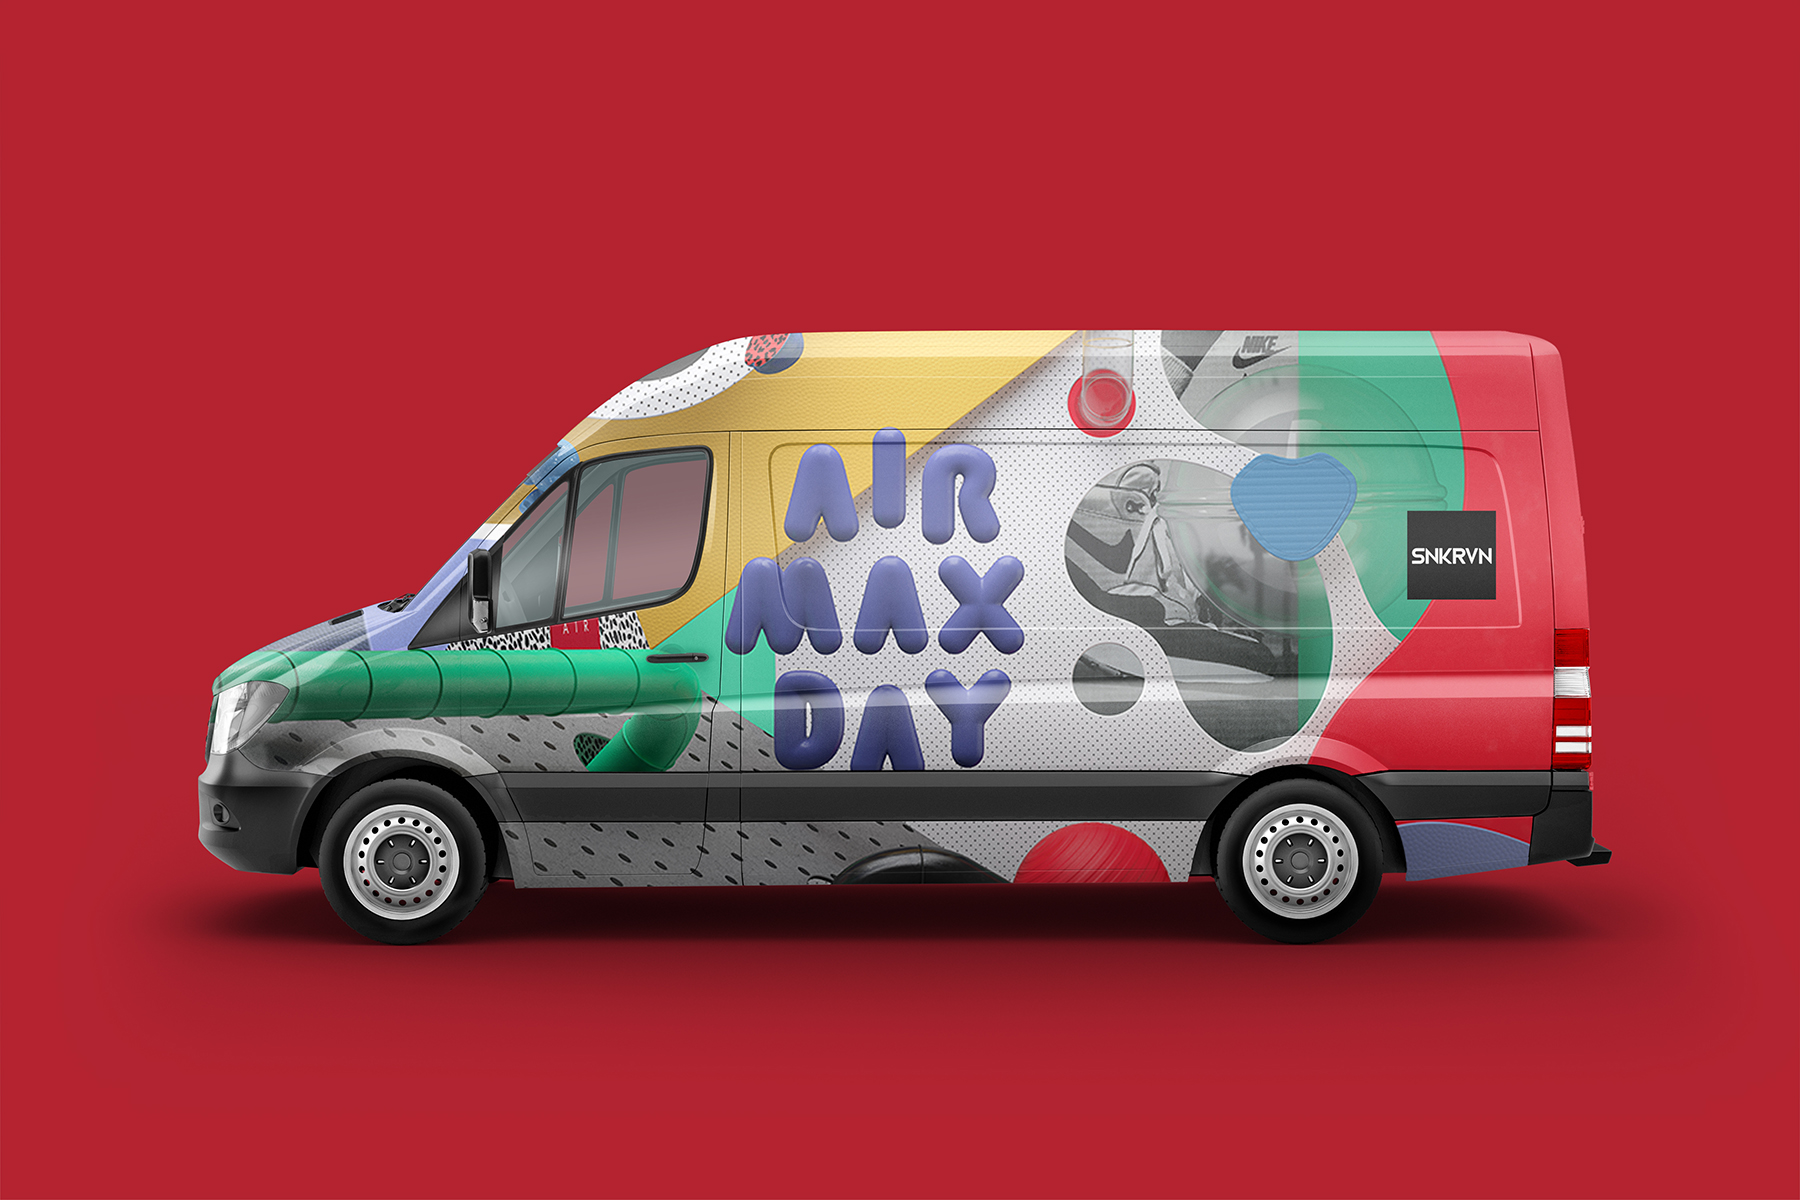 SNKRVN Air Max Day van